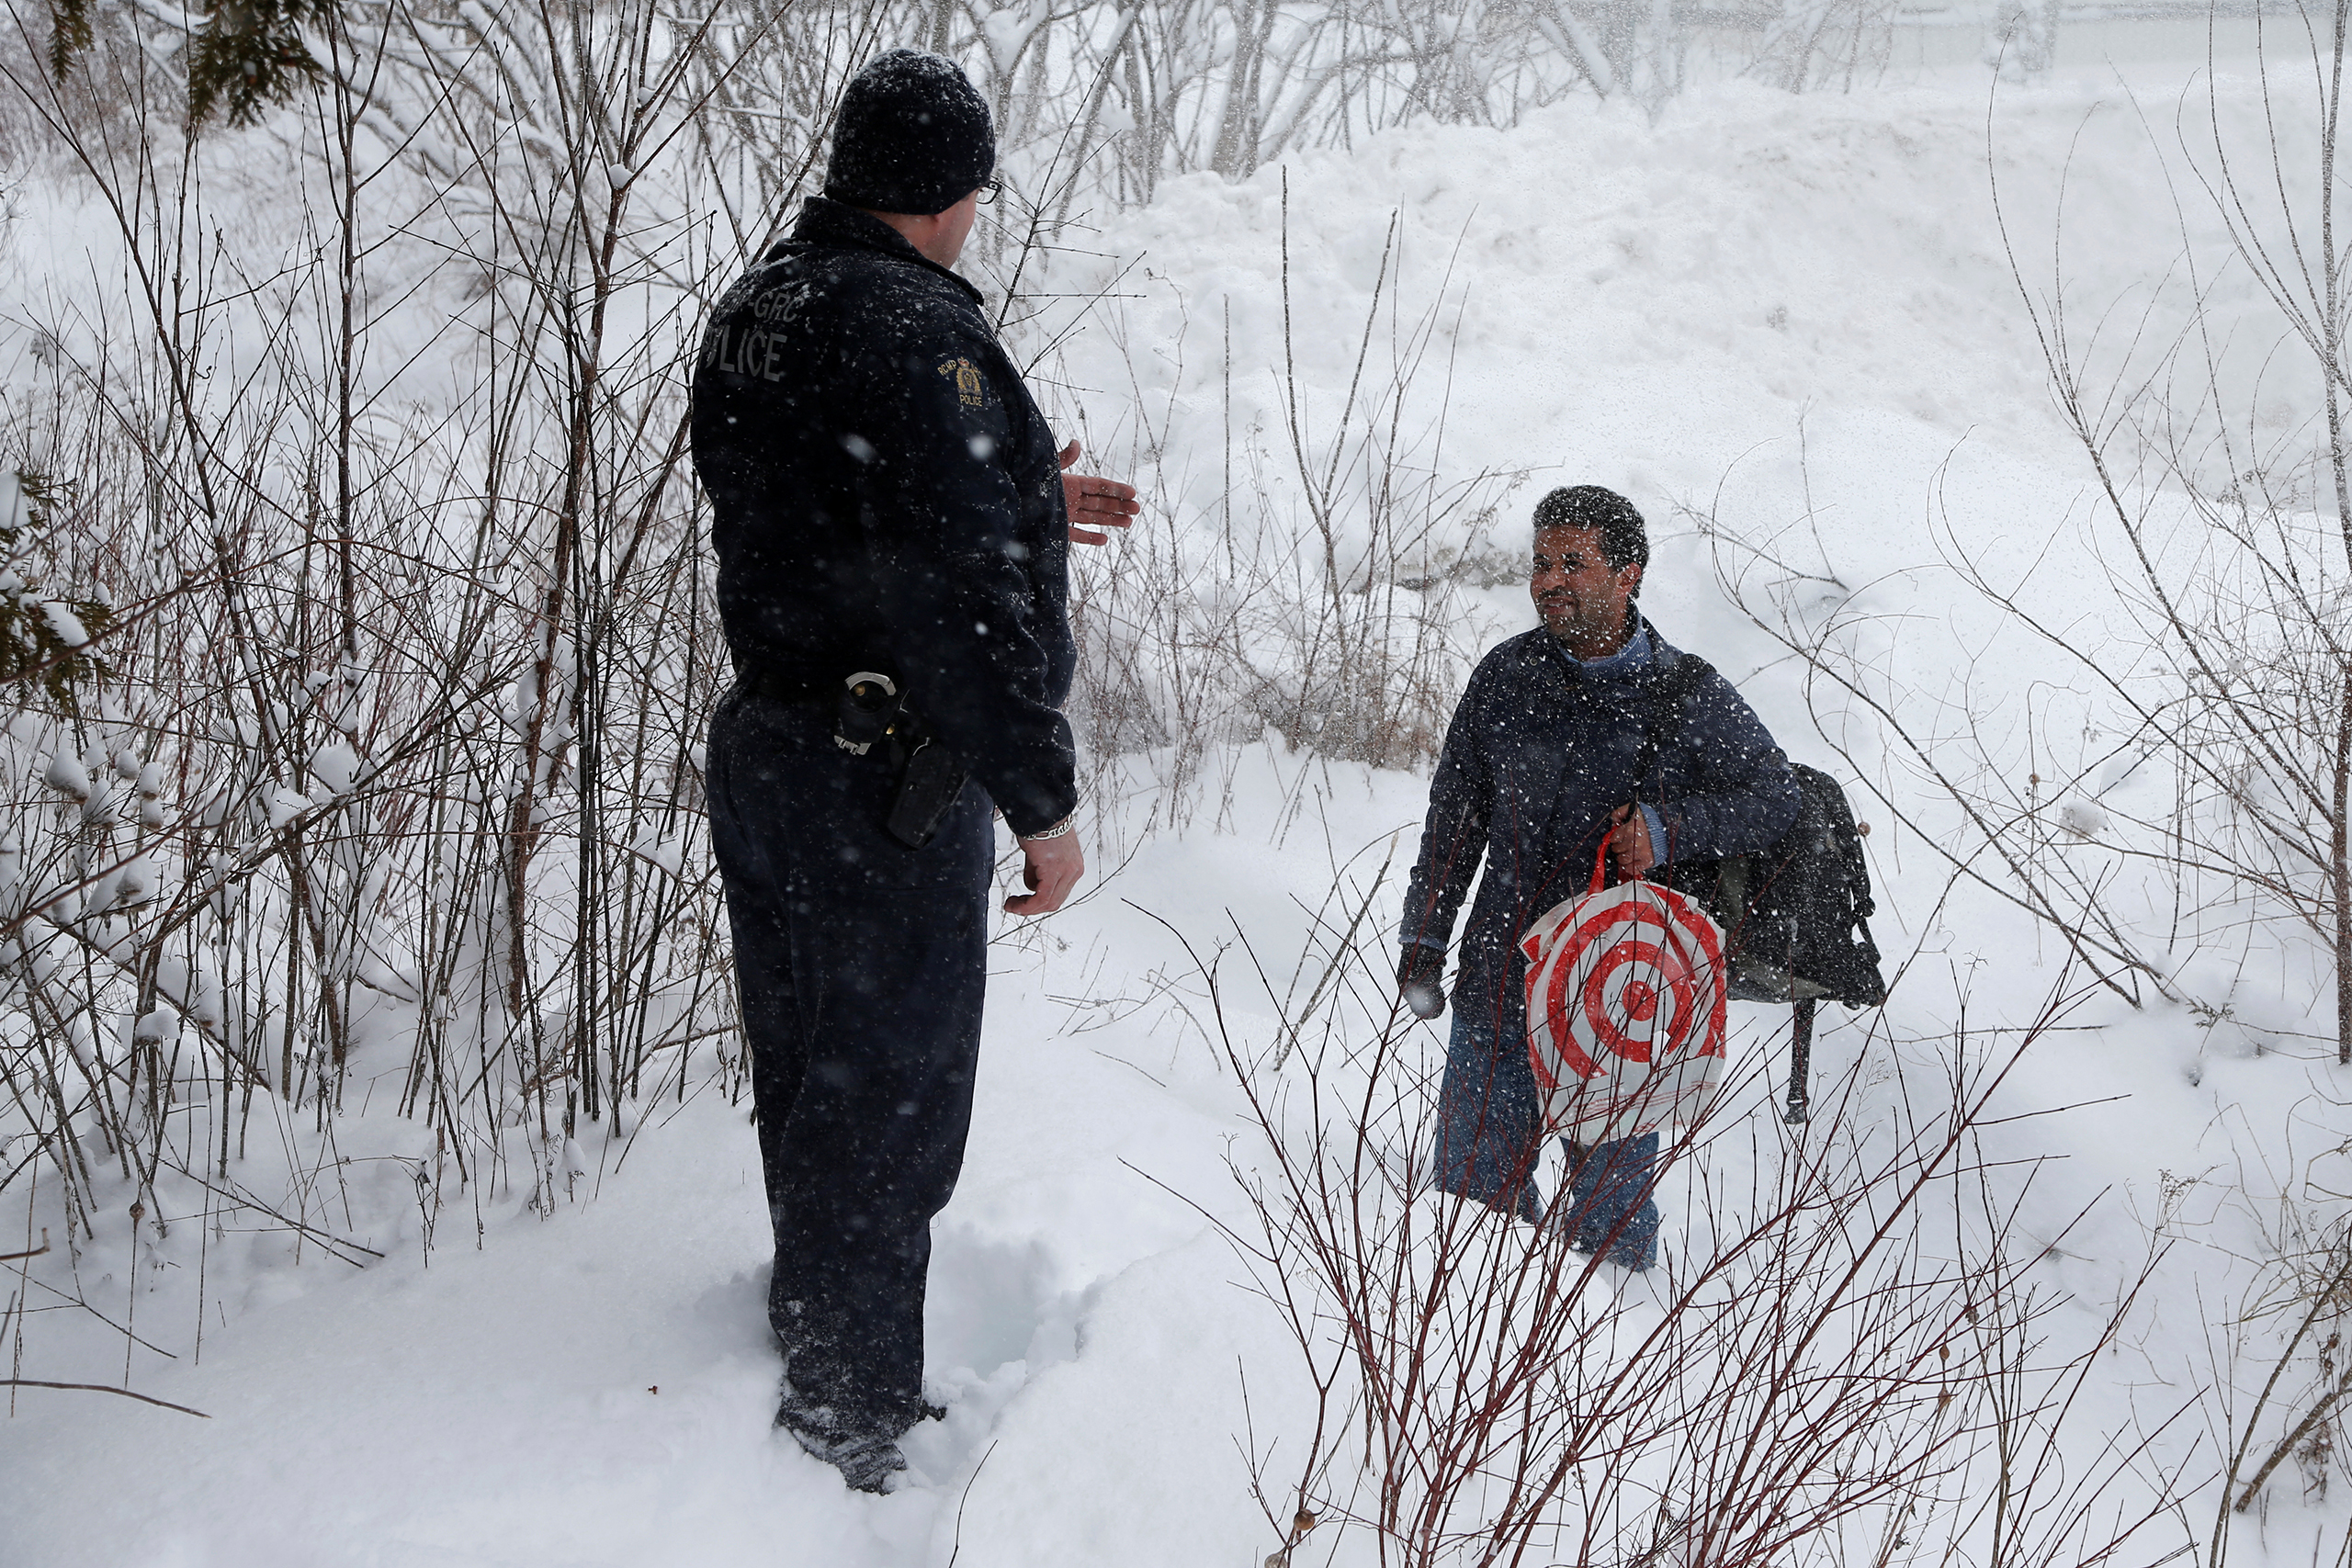 A man who told police he was from Sudan is confronted by a Royal Canadian Mounted Police (RCMP) officer as he attempts to cross the U.S.-Canada border into Hemmingford, Quebec, on Feb. 13, 2017.